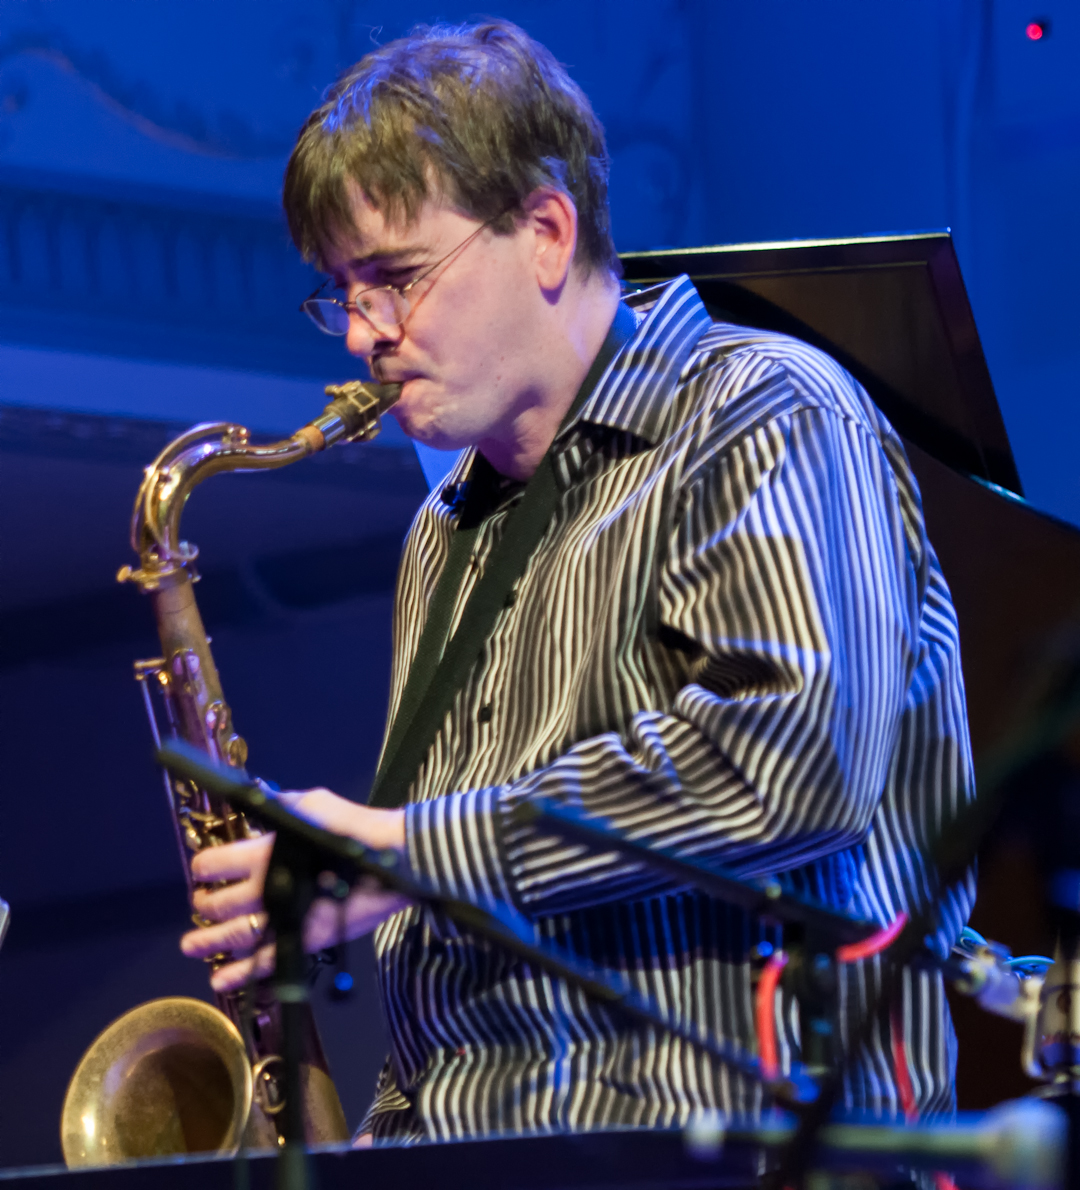 Mike Lee with the Oliver Lake Big Band at Roulette